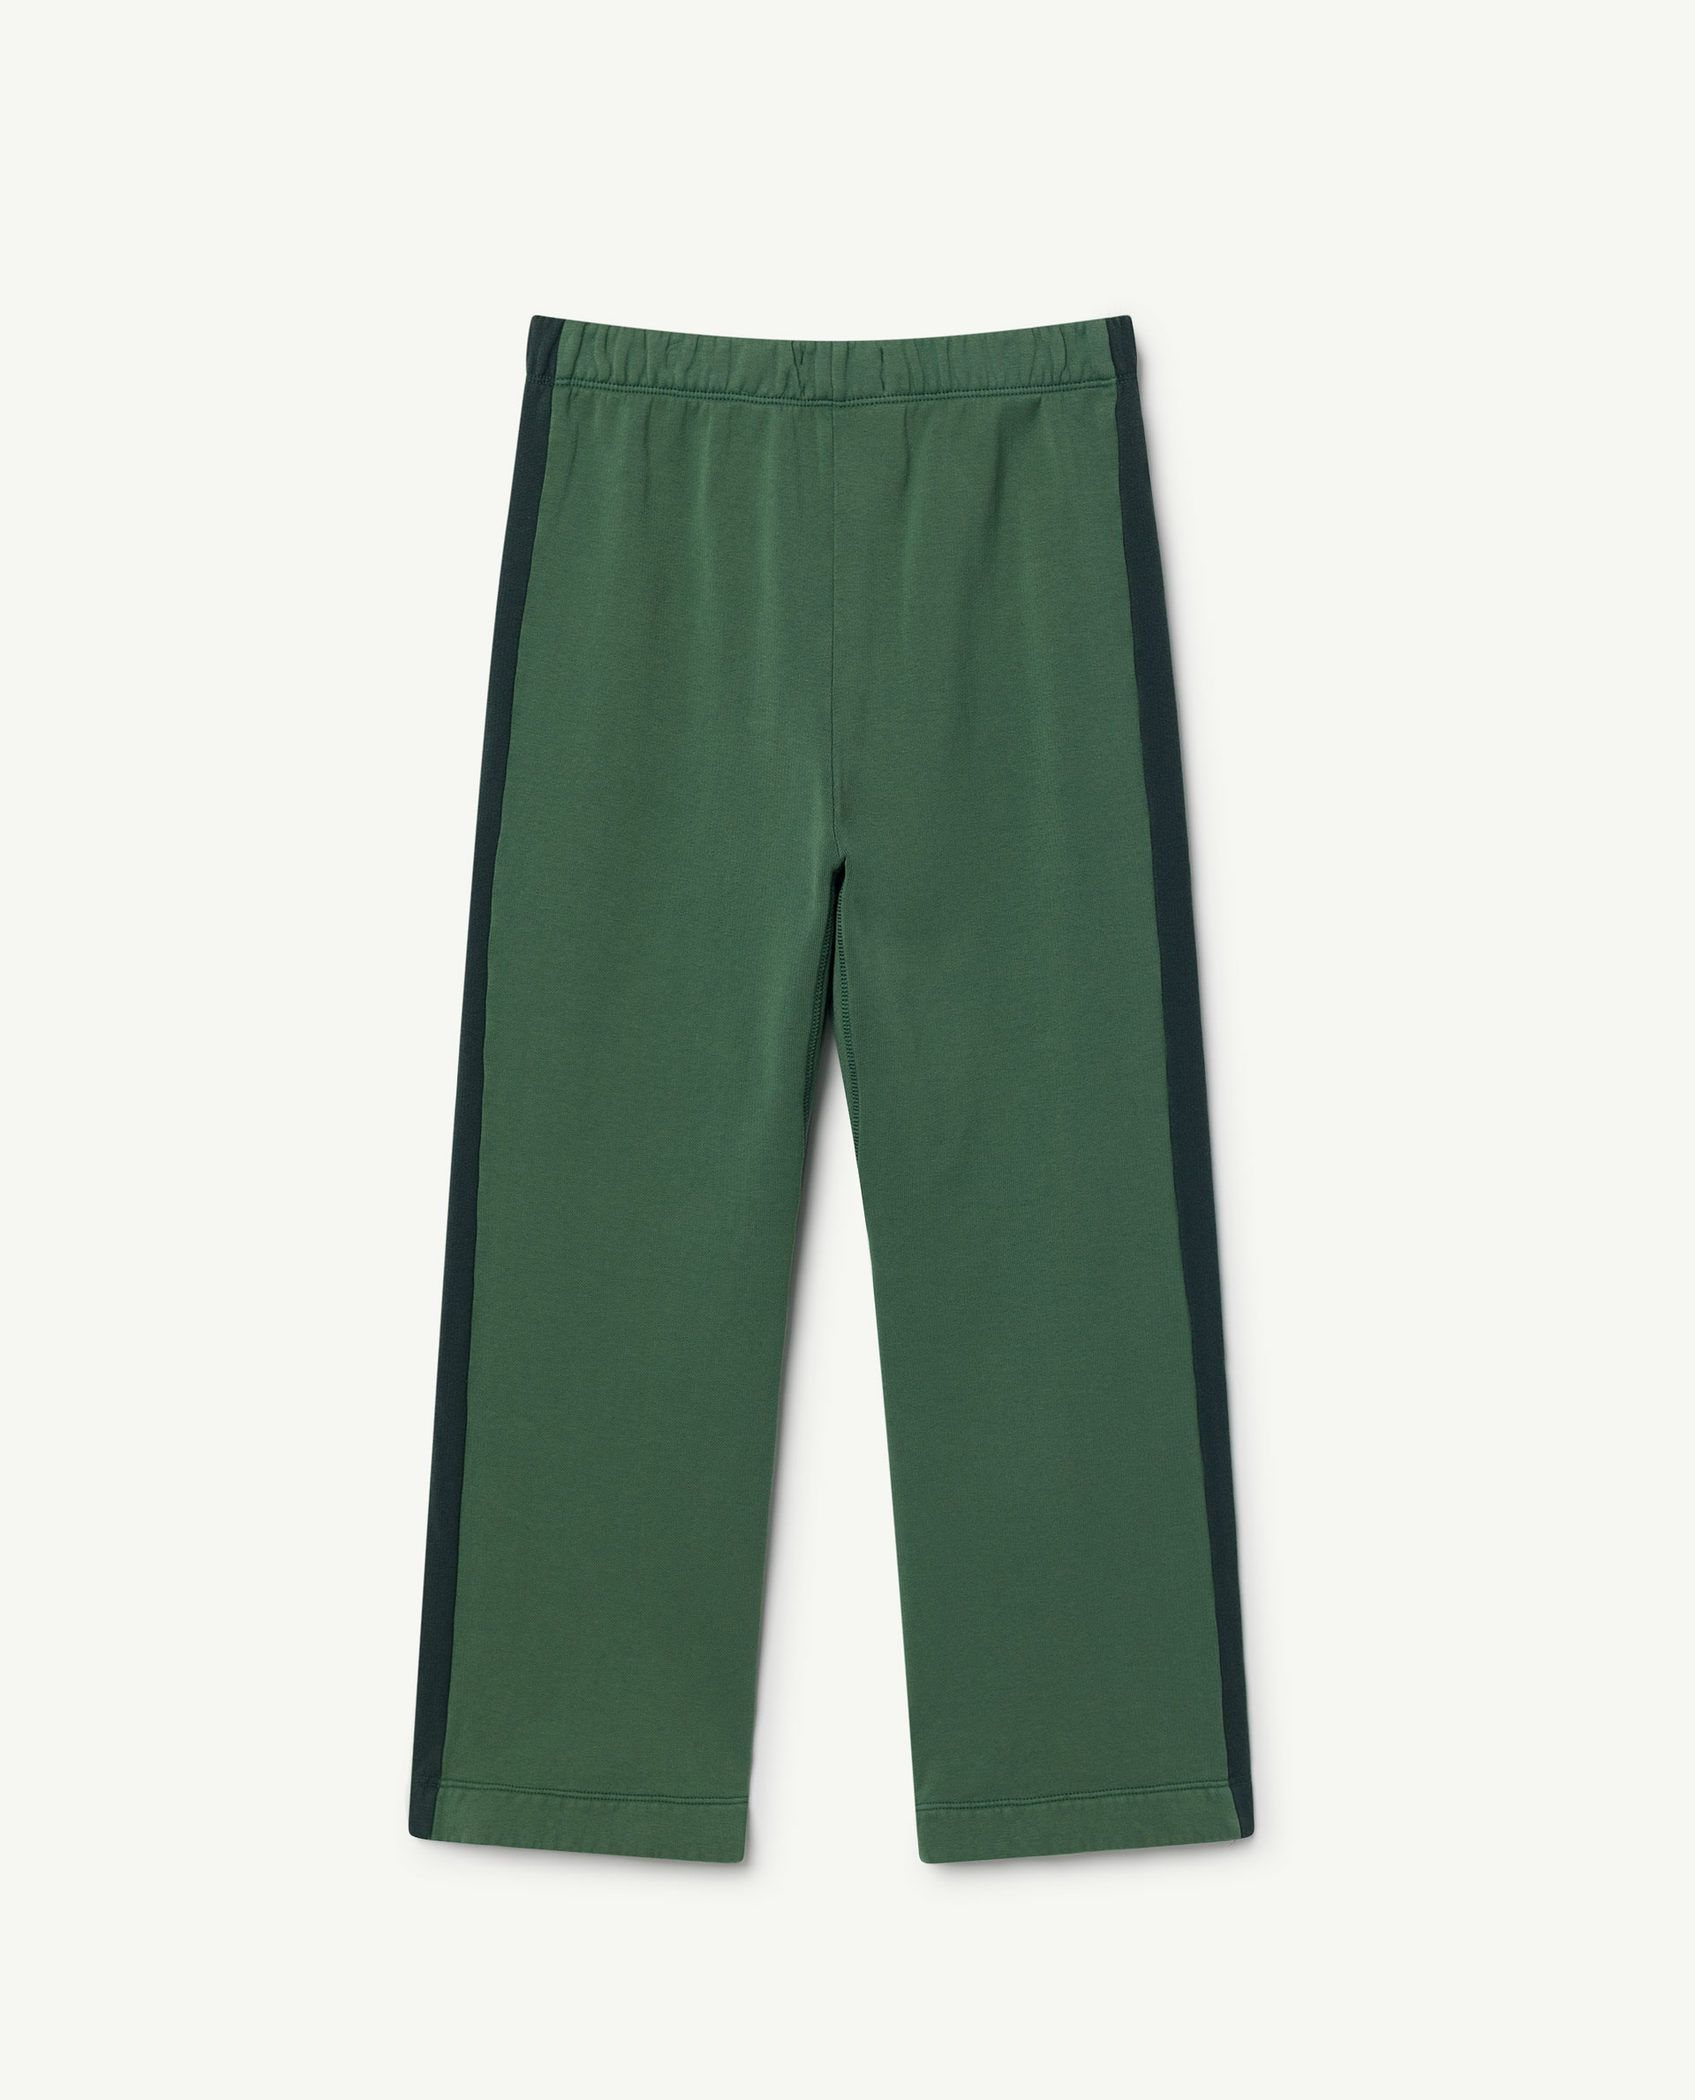 Green Magpie Pants img-2